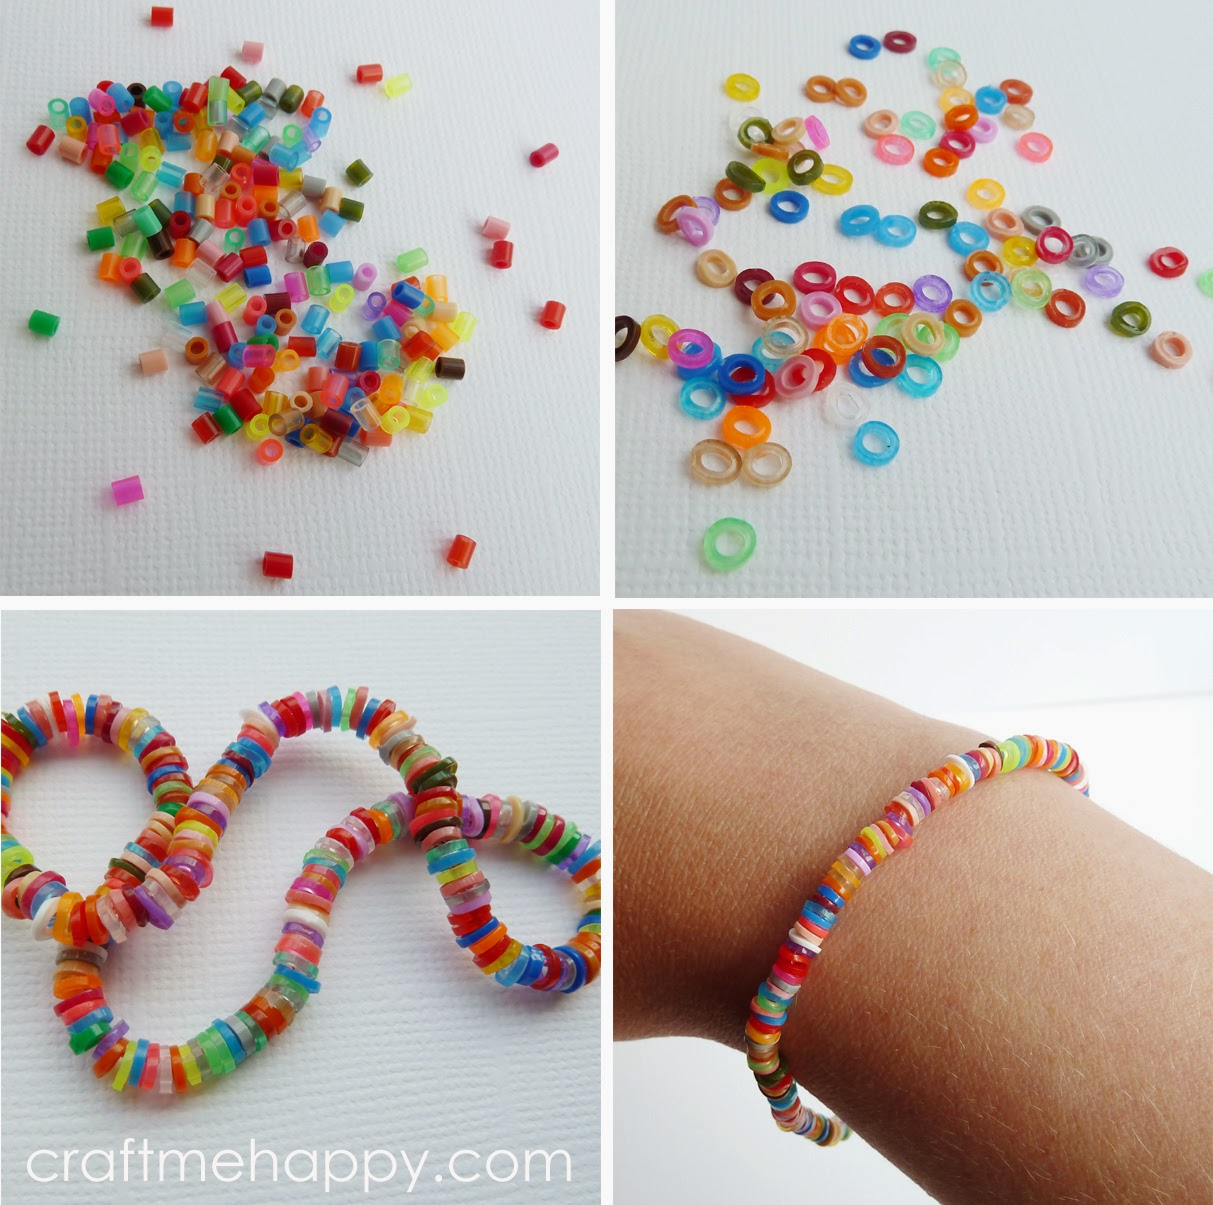 play ss kids pinterest craft doughnut film bead artbeaded for pin perler crafts make bracelet beadsdoughnutdiy activitiesperler braceletskids